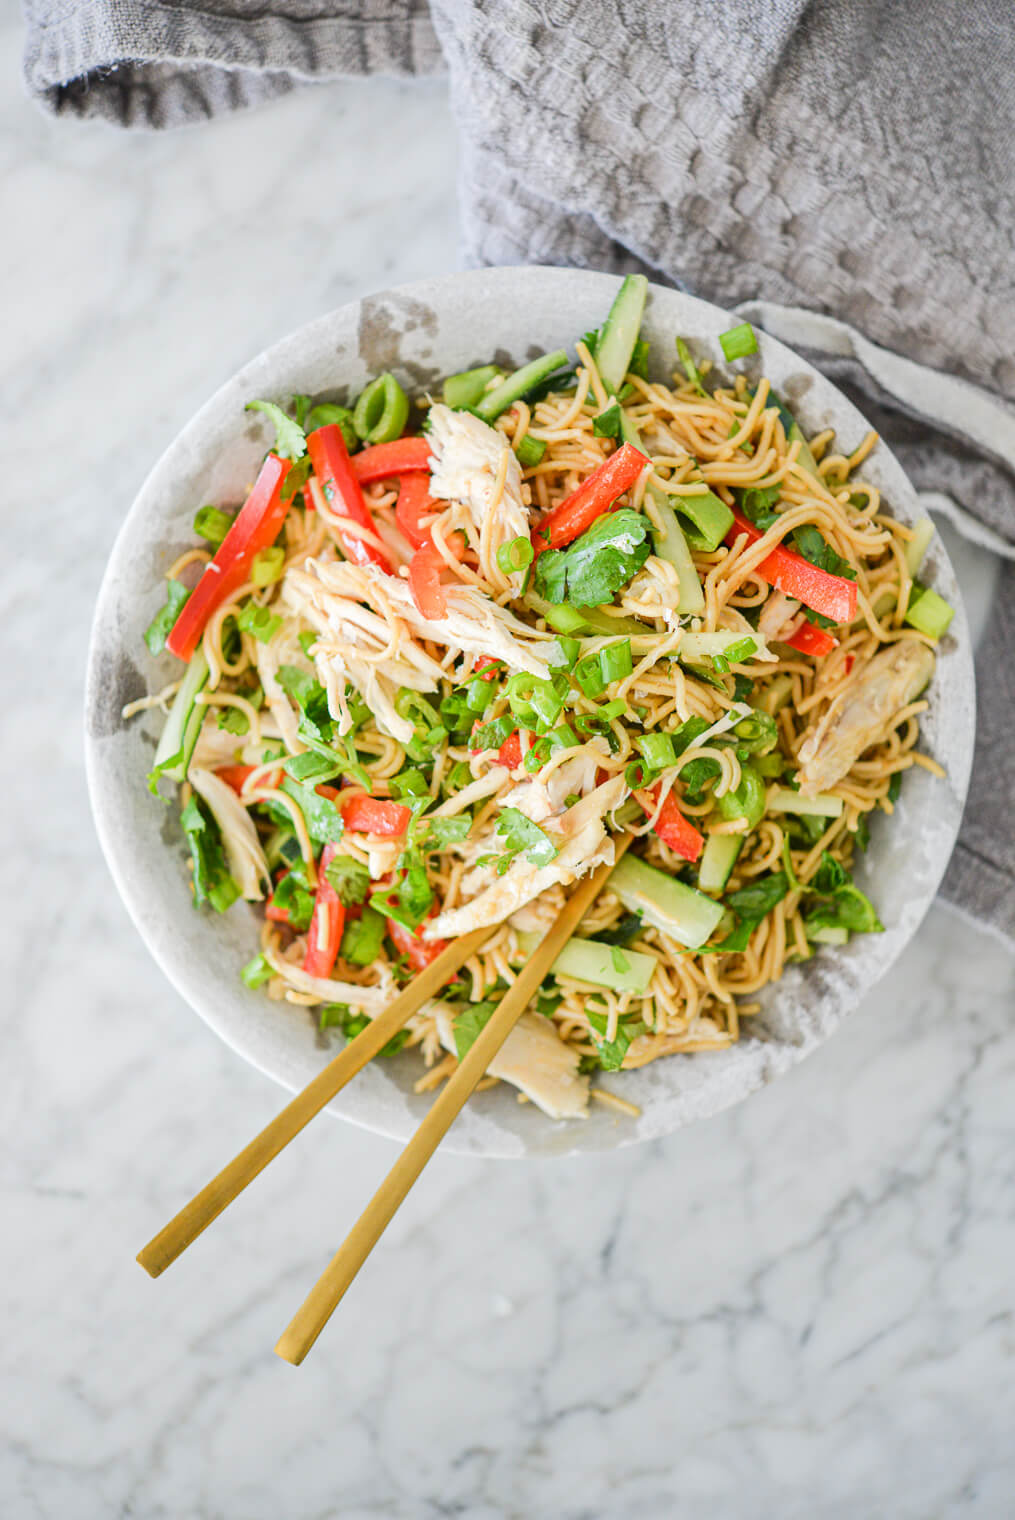 top view of sesame noodles with raw strips of cucumber, red bell peppers, and snap peas in a stone bowl with gold chopsticks resting on the rim all on a marble surface